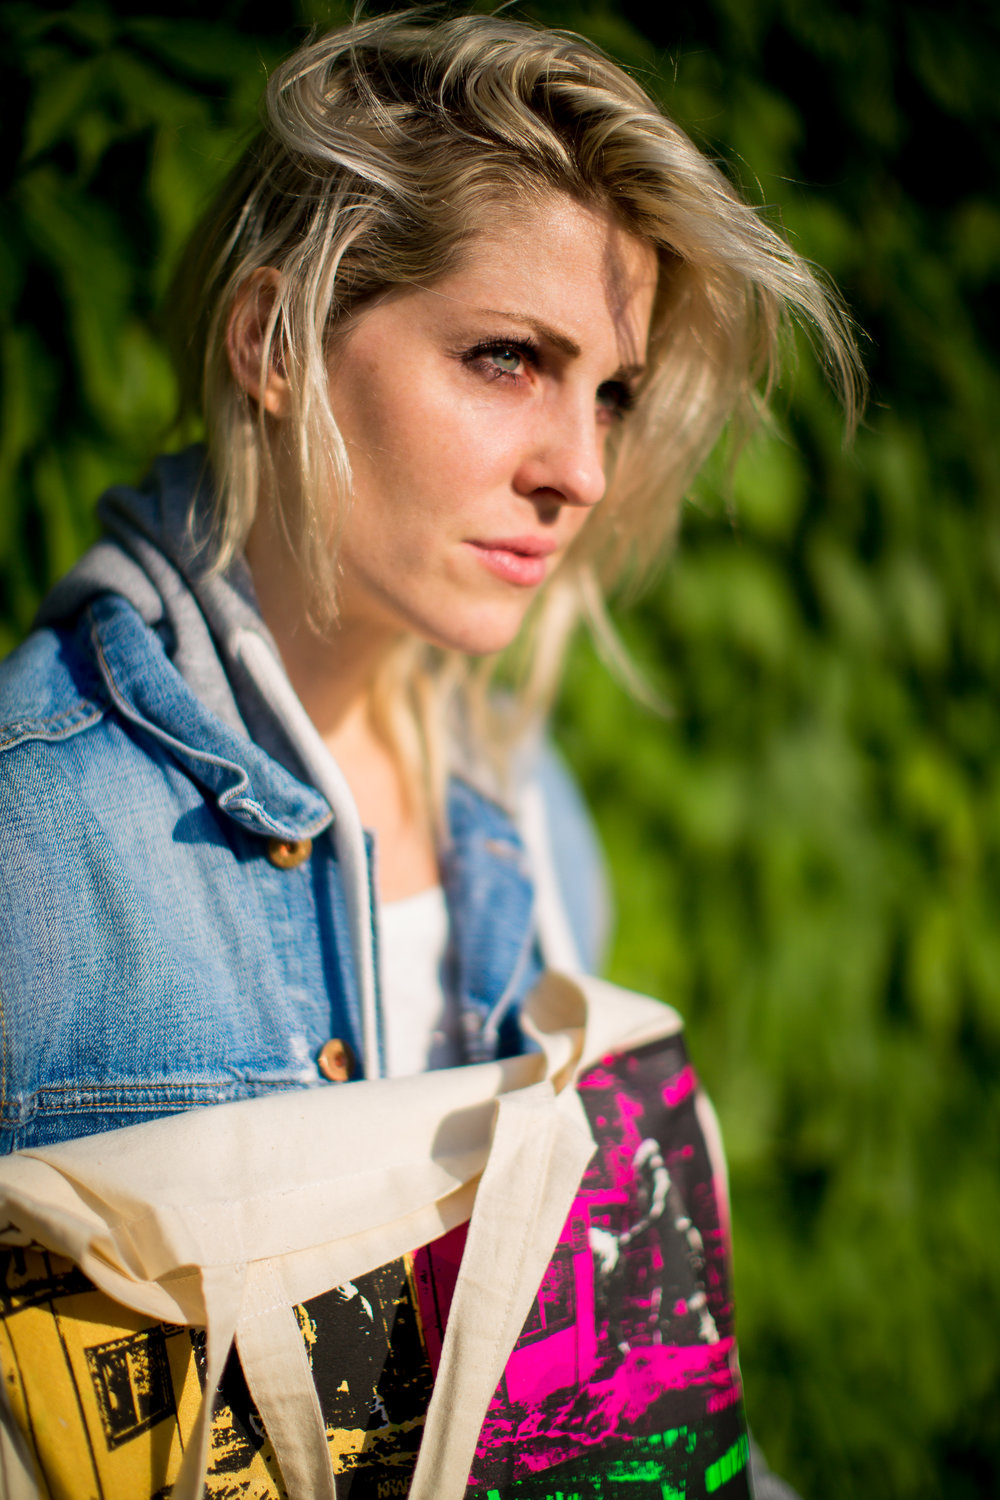 Brody Dalle backstage at Øyafestivalen 2014, Oslo.